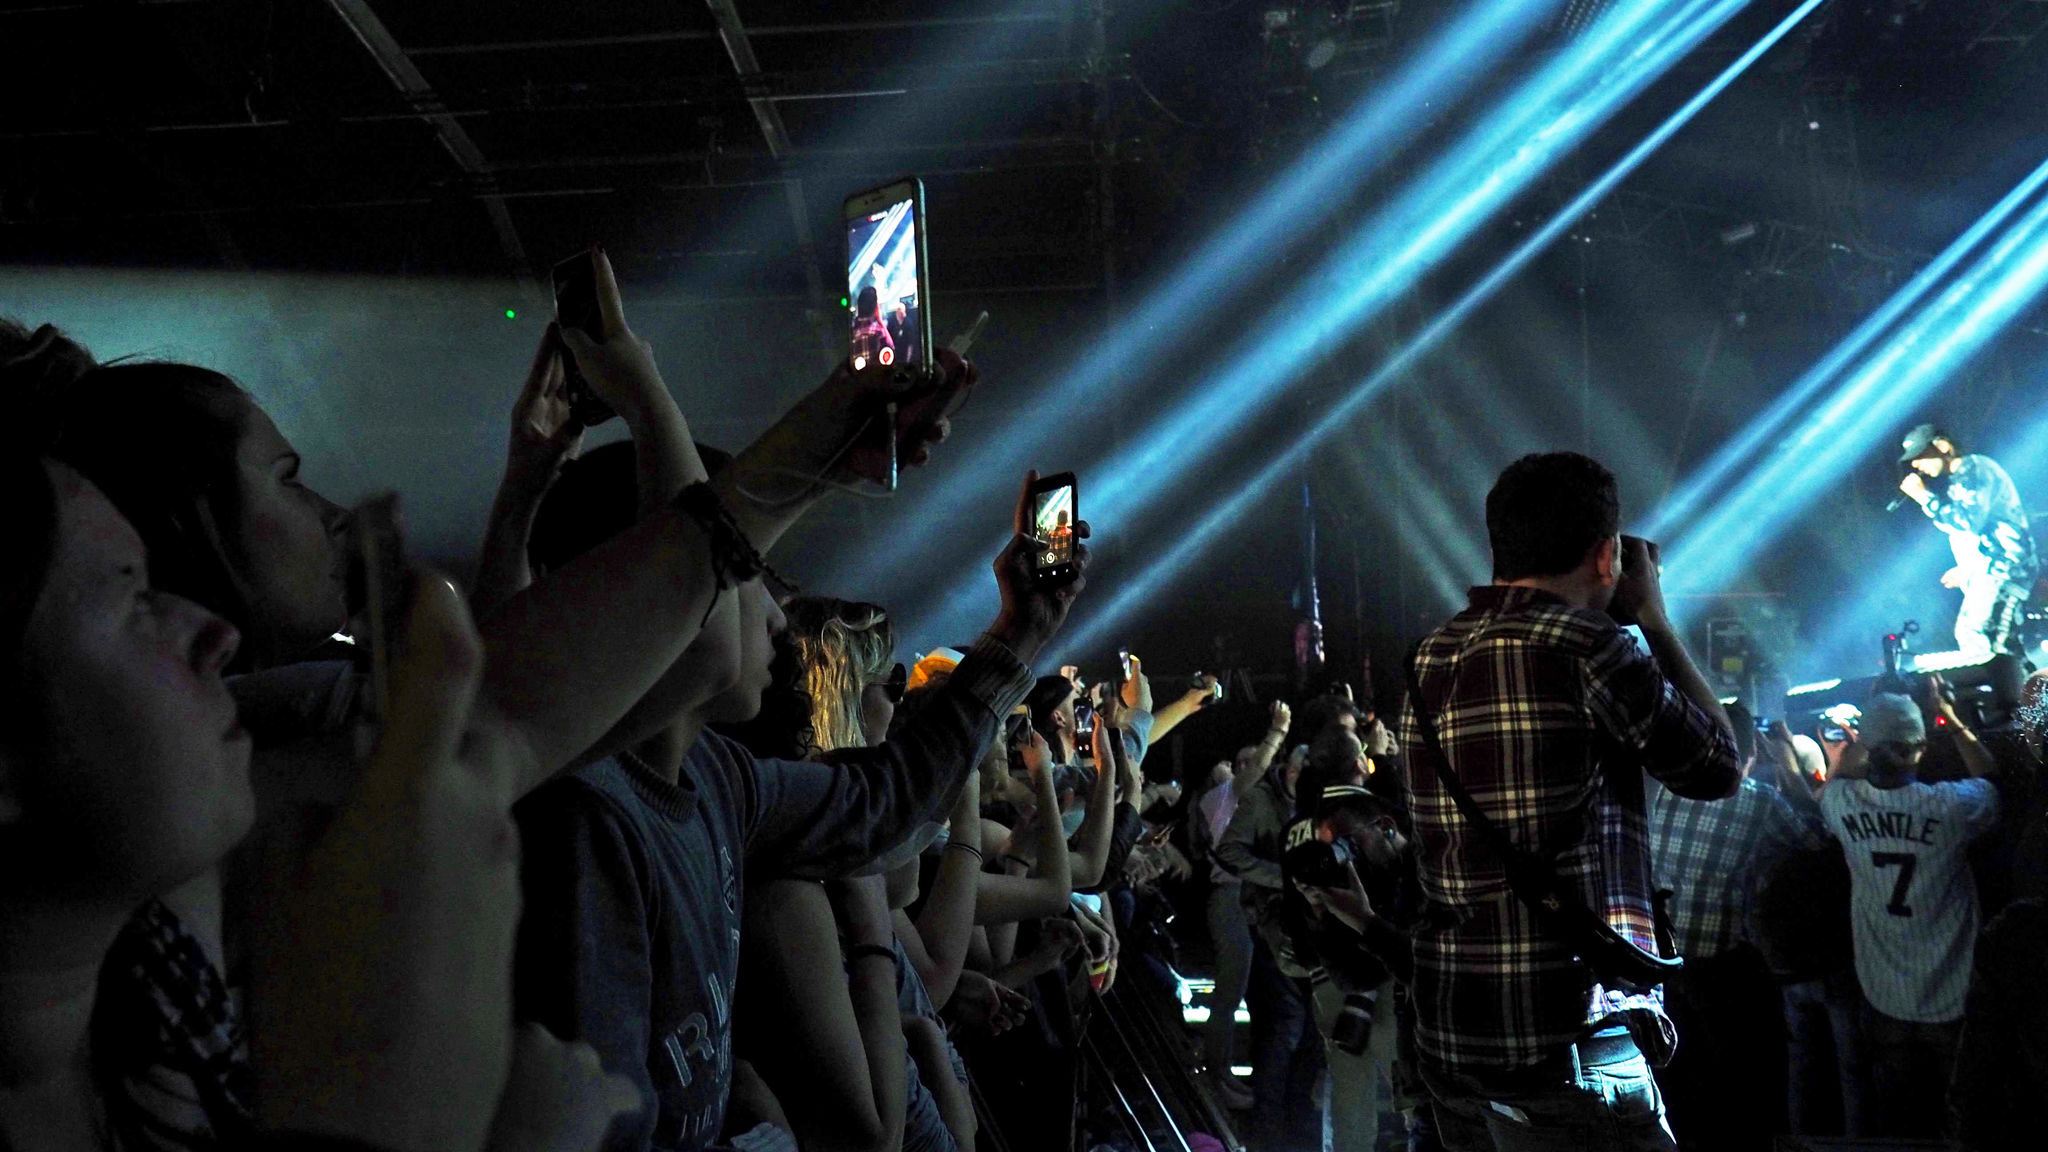 Forget brain chips, live experiences are the future of entertainment